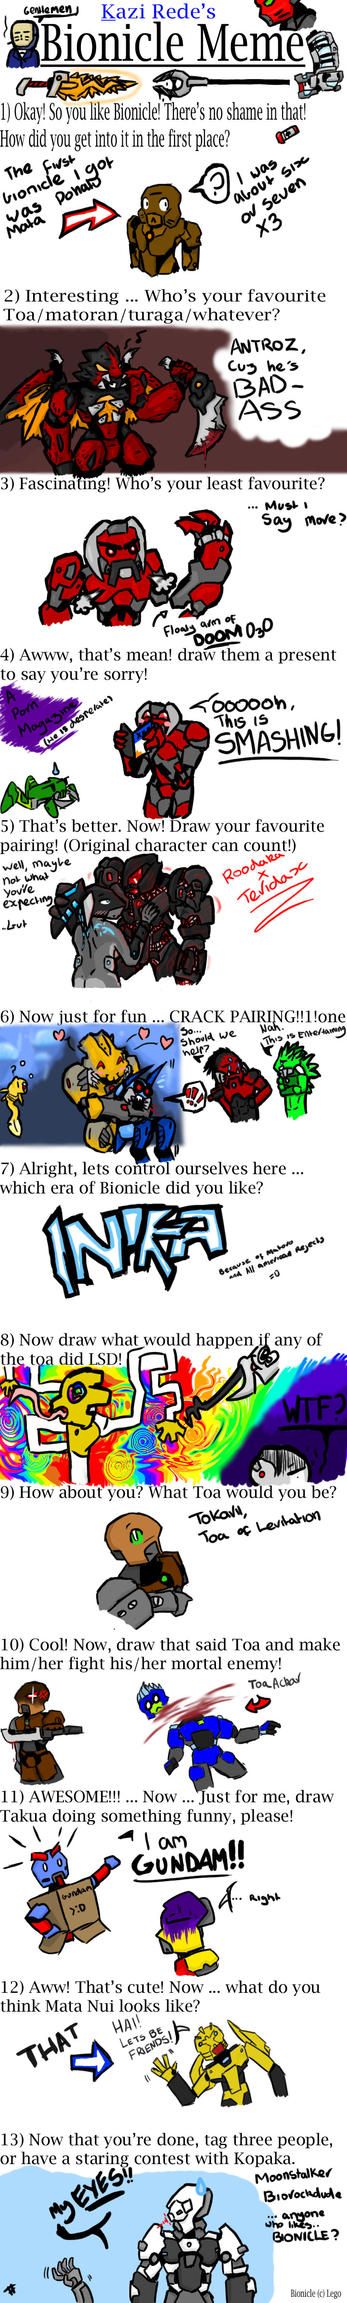 BIONICLE meme by tarukatheultimate